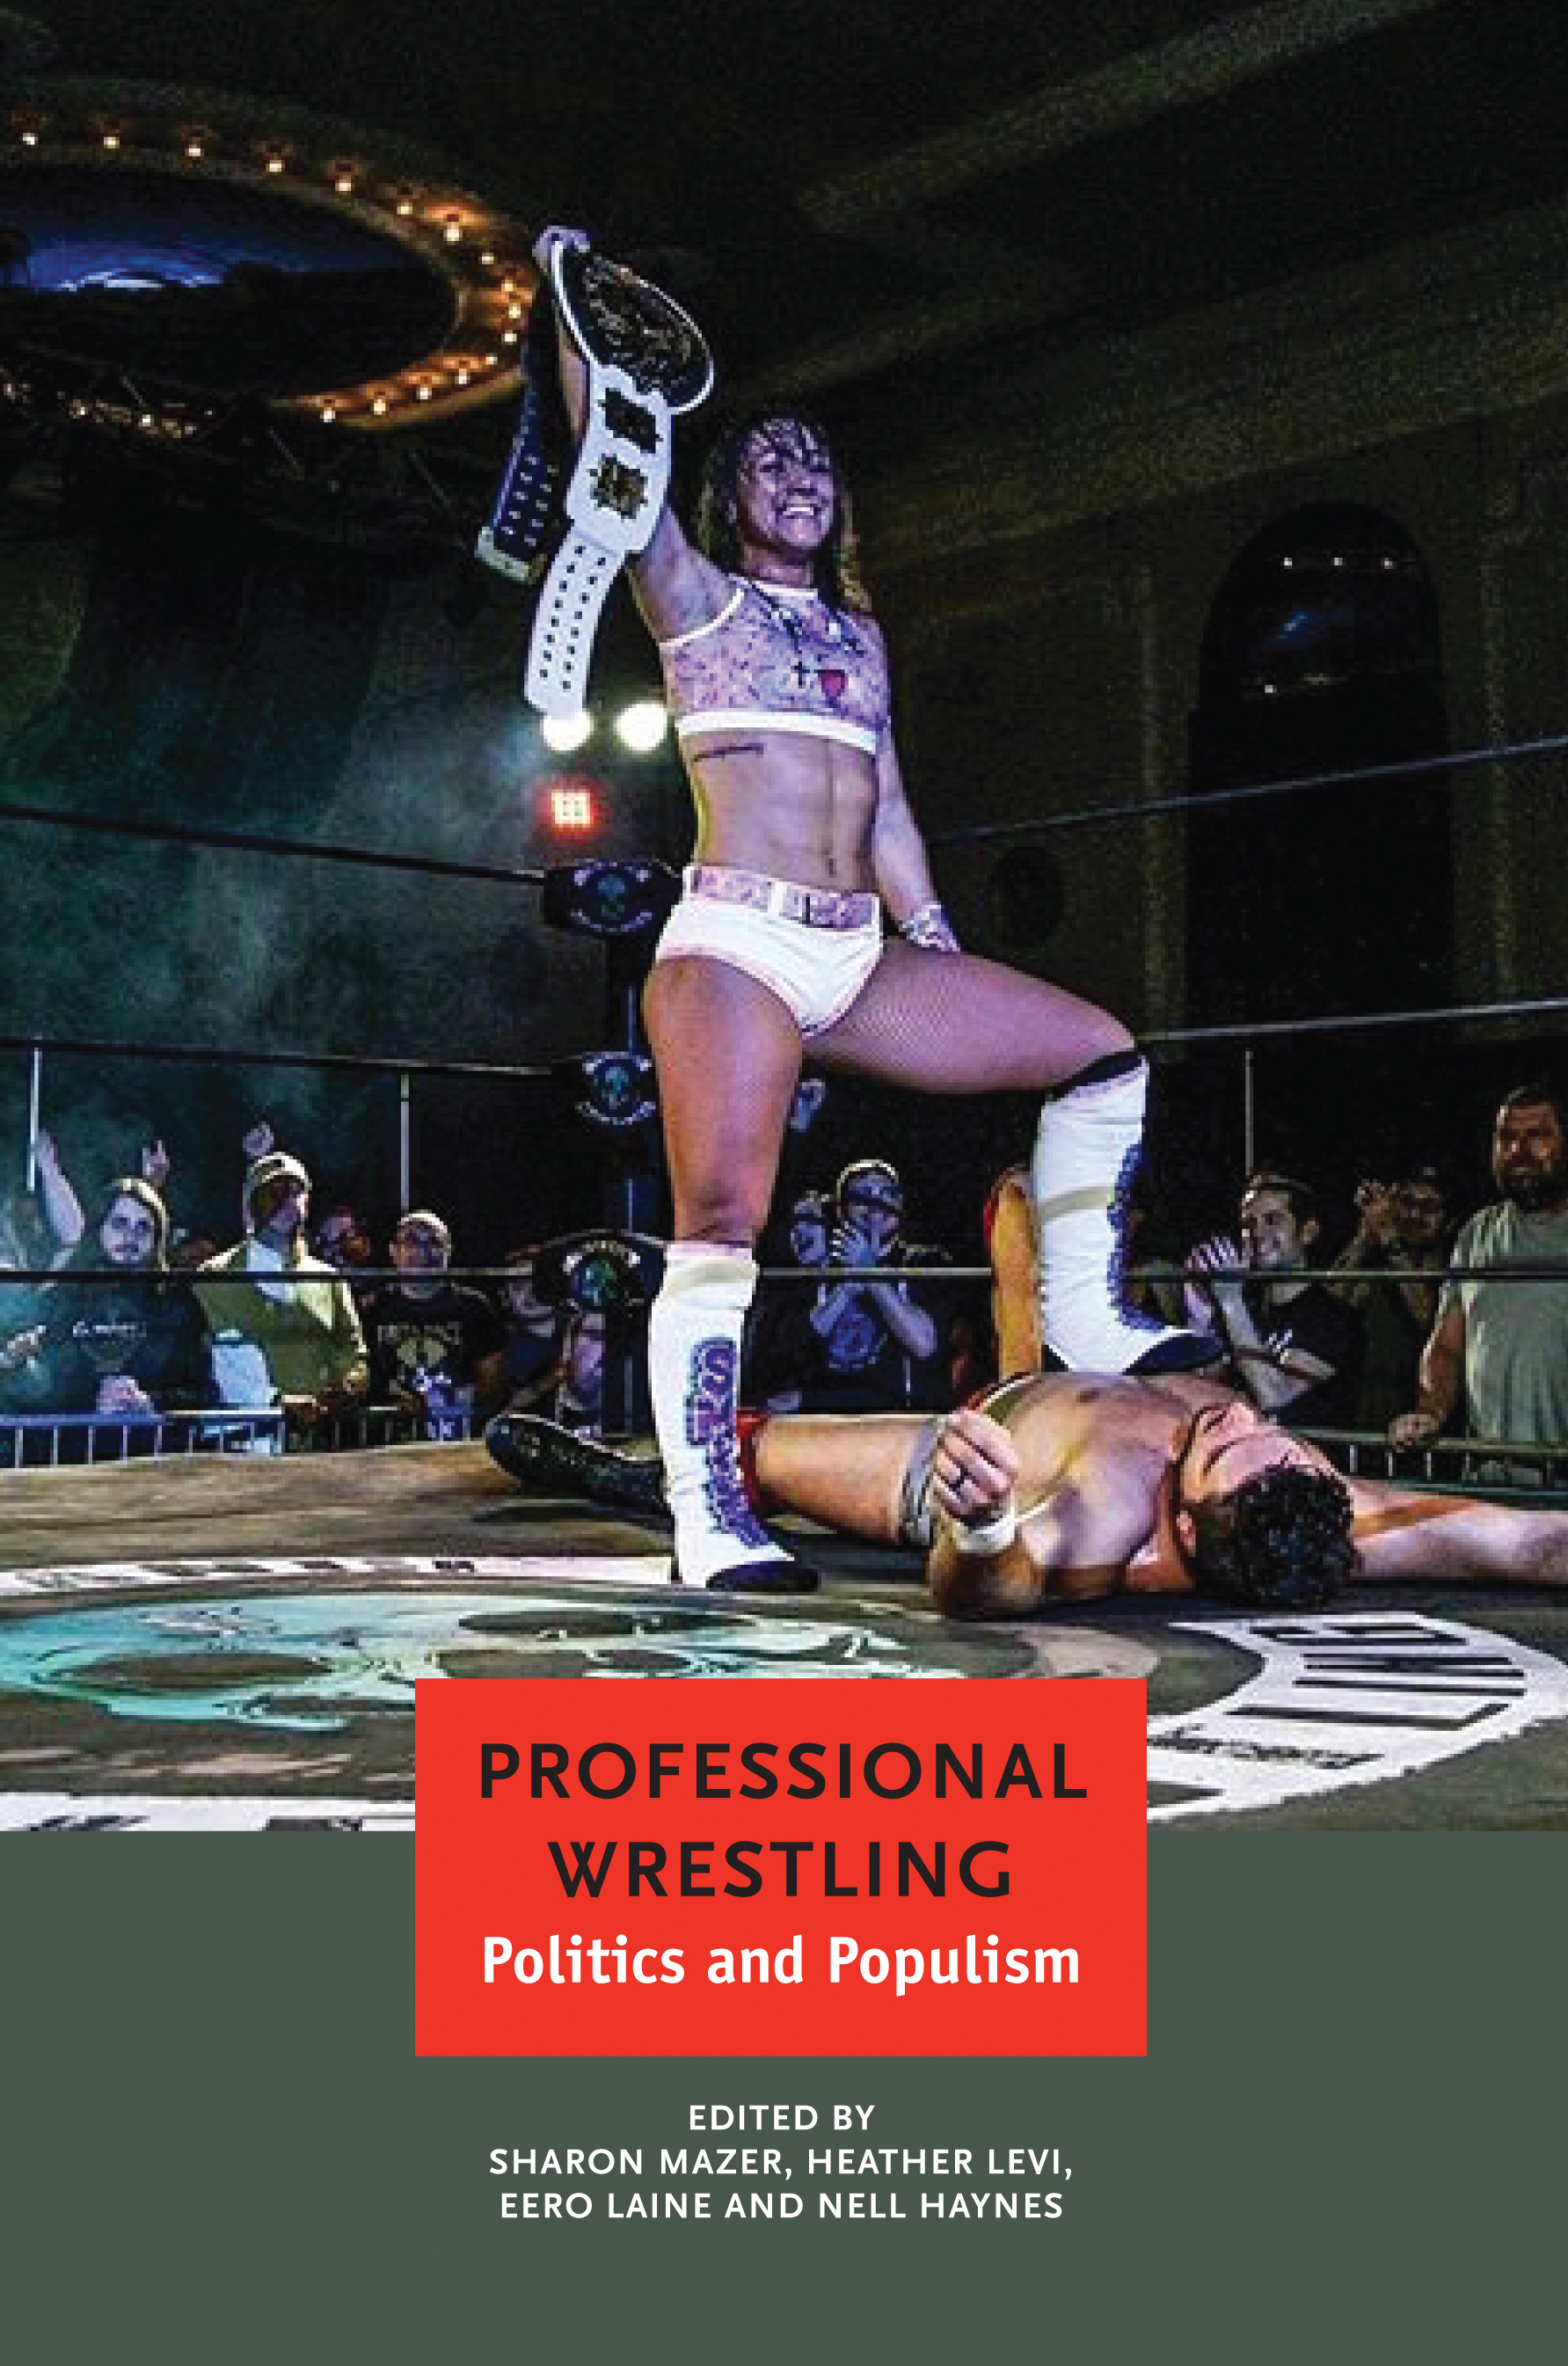 Professional Wrestling: Politics and Populism by Sharon Mazer et al. |  Seagull Books